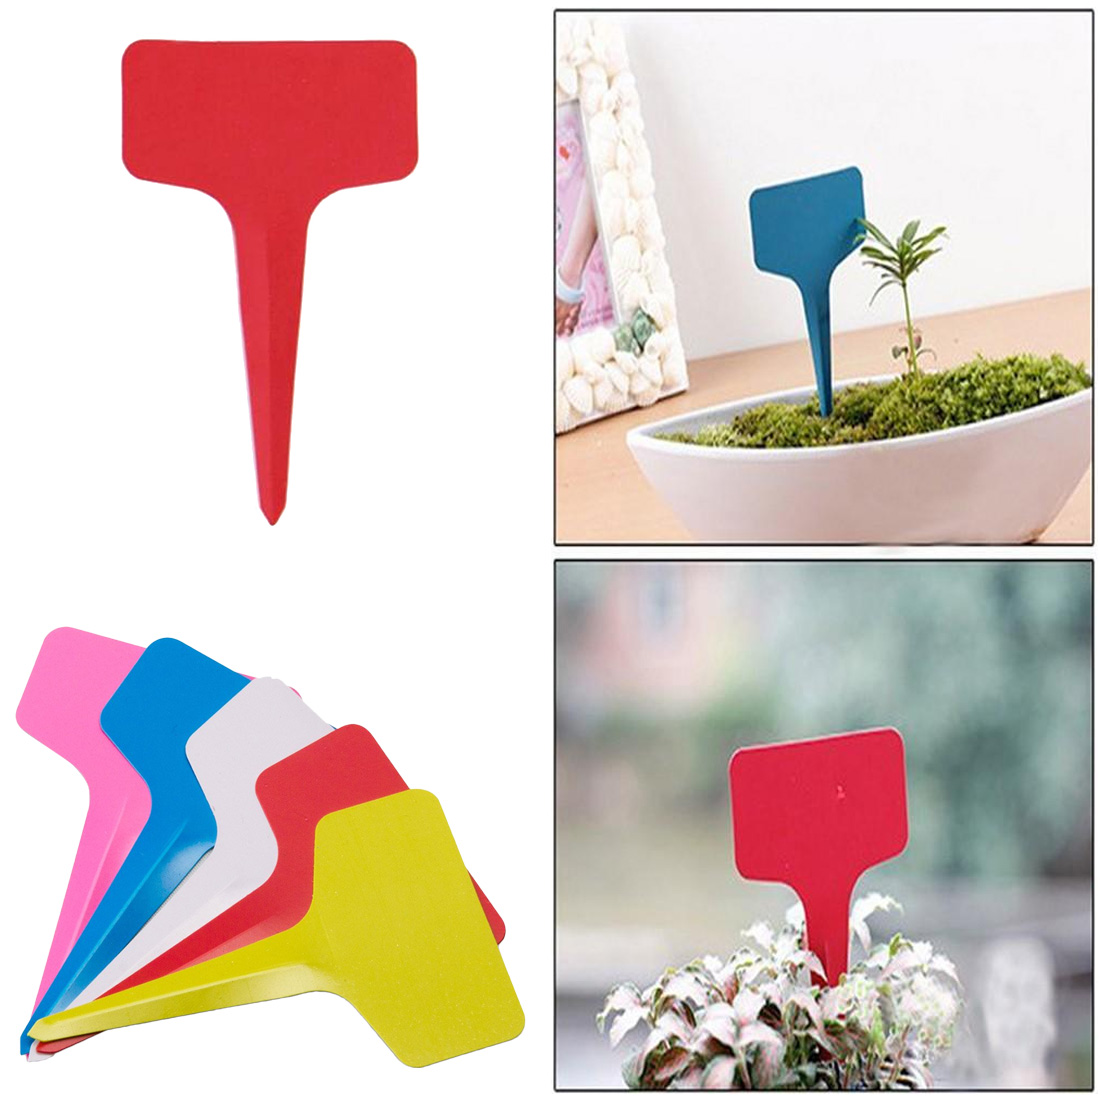 Garden Hand Tools Adroit 20pcs Gardening Plant T Shape Waterproof Tags Flower Vegetable Planting Label Tools Farm Garden Seedling Tray Mark Garden Tools